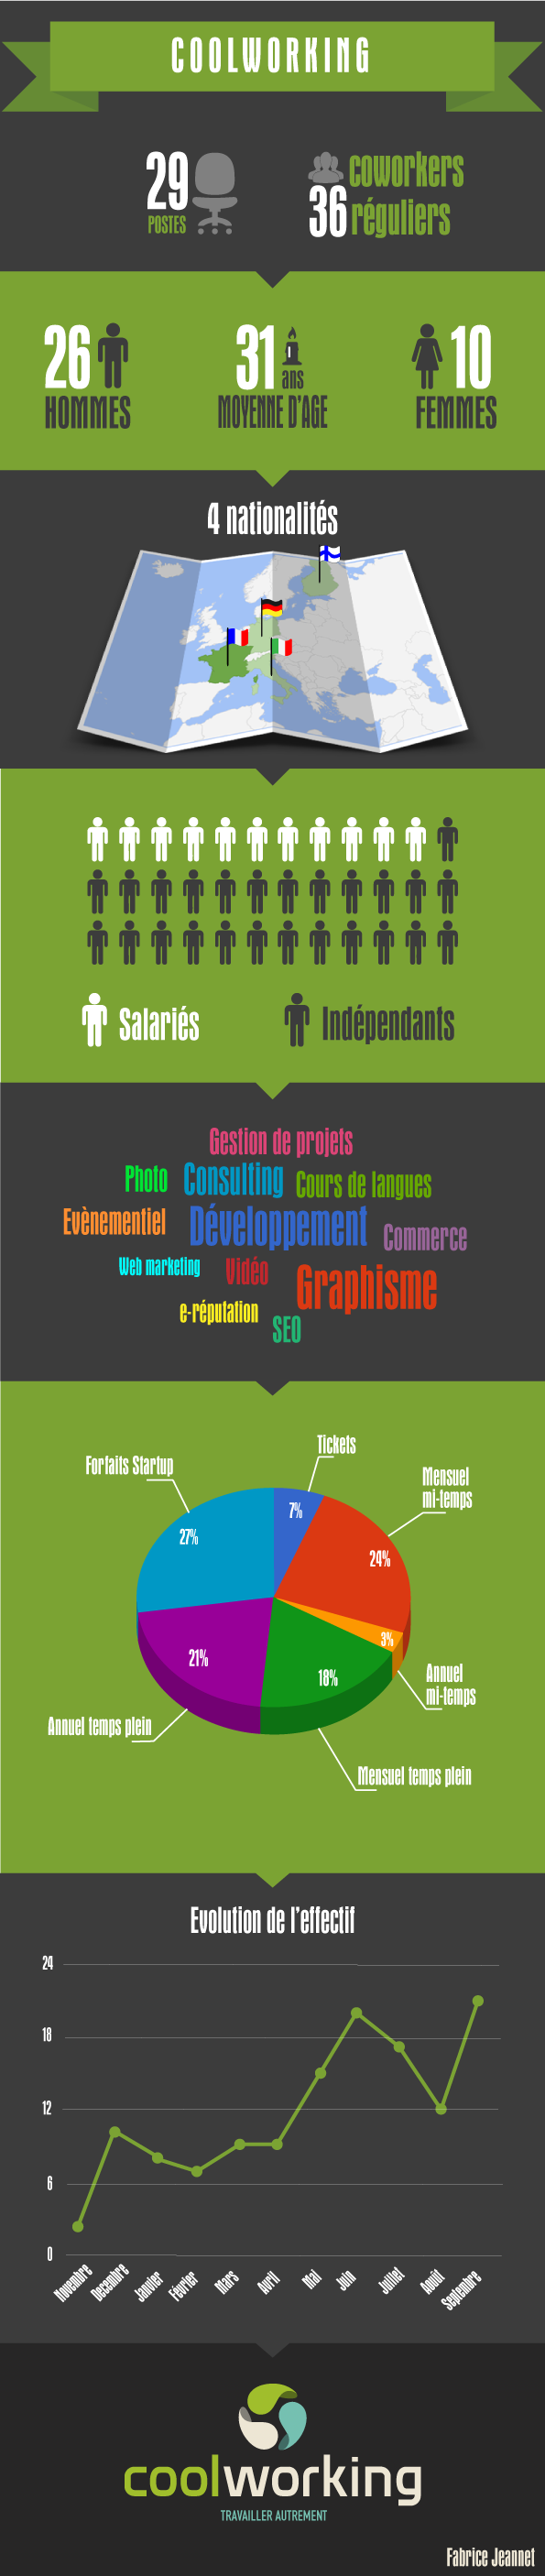 infographie-coolworking